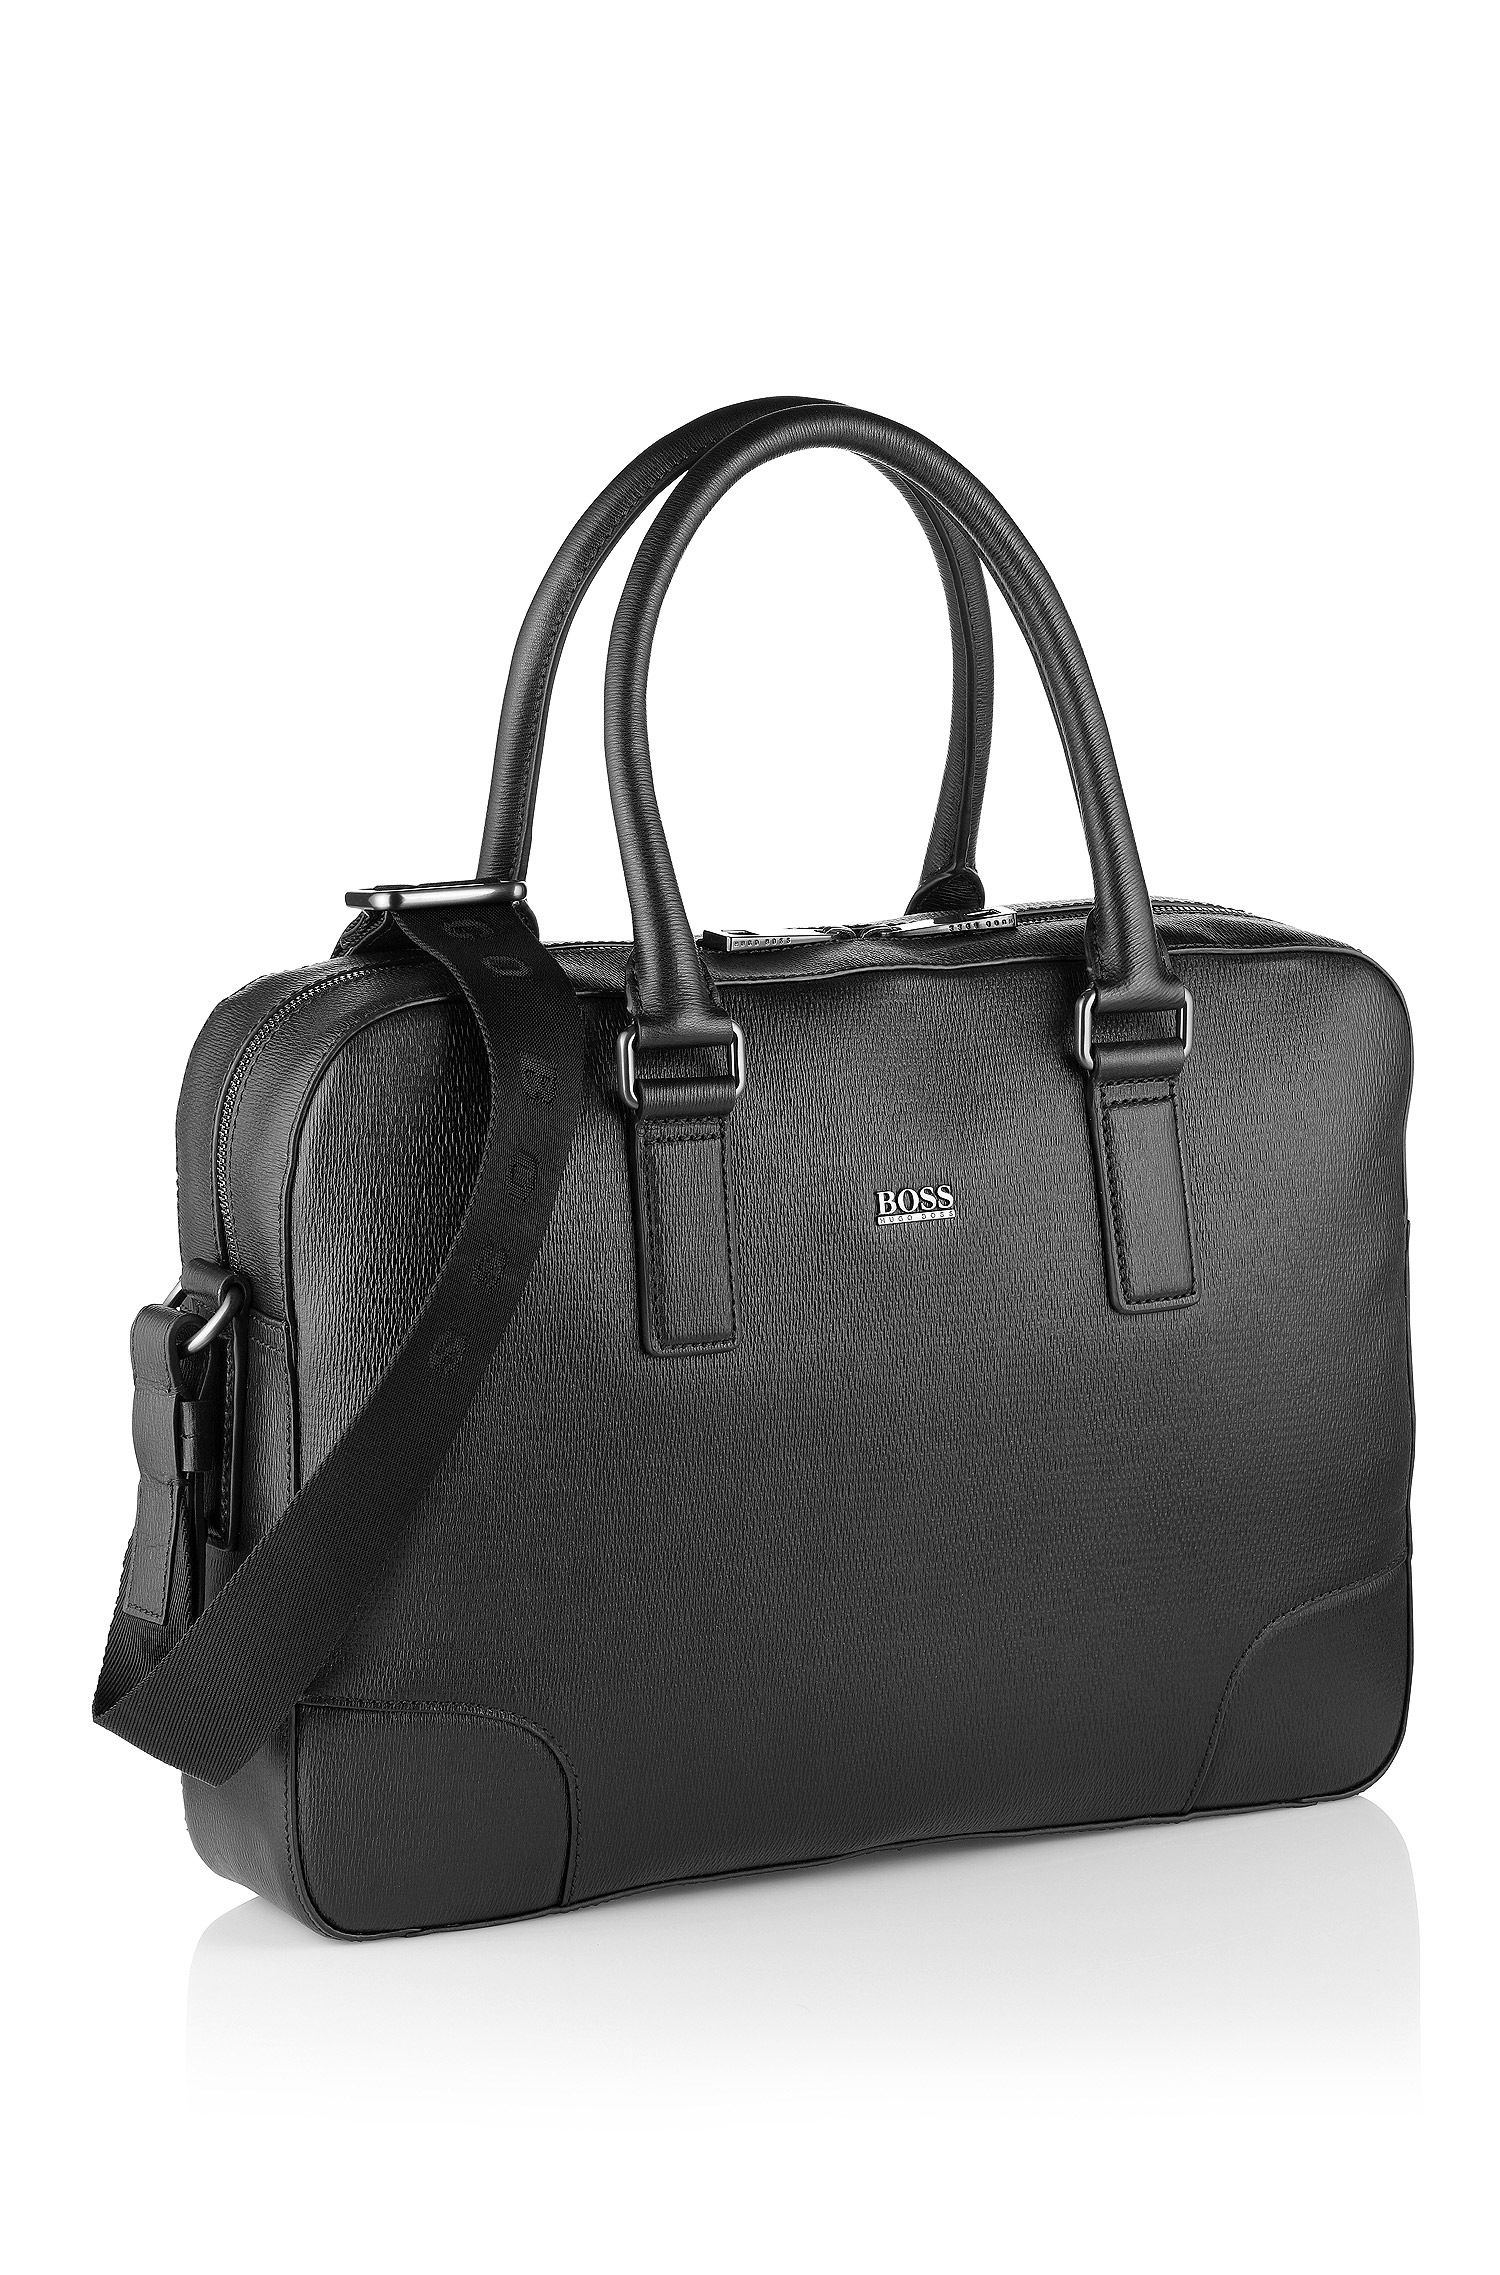 63041460d0 BOSS Business bag 'Westin' in printed leather Black free shipping ...